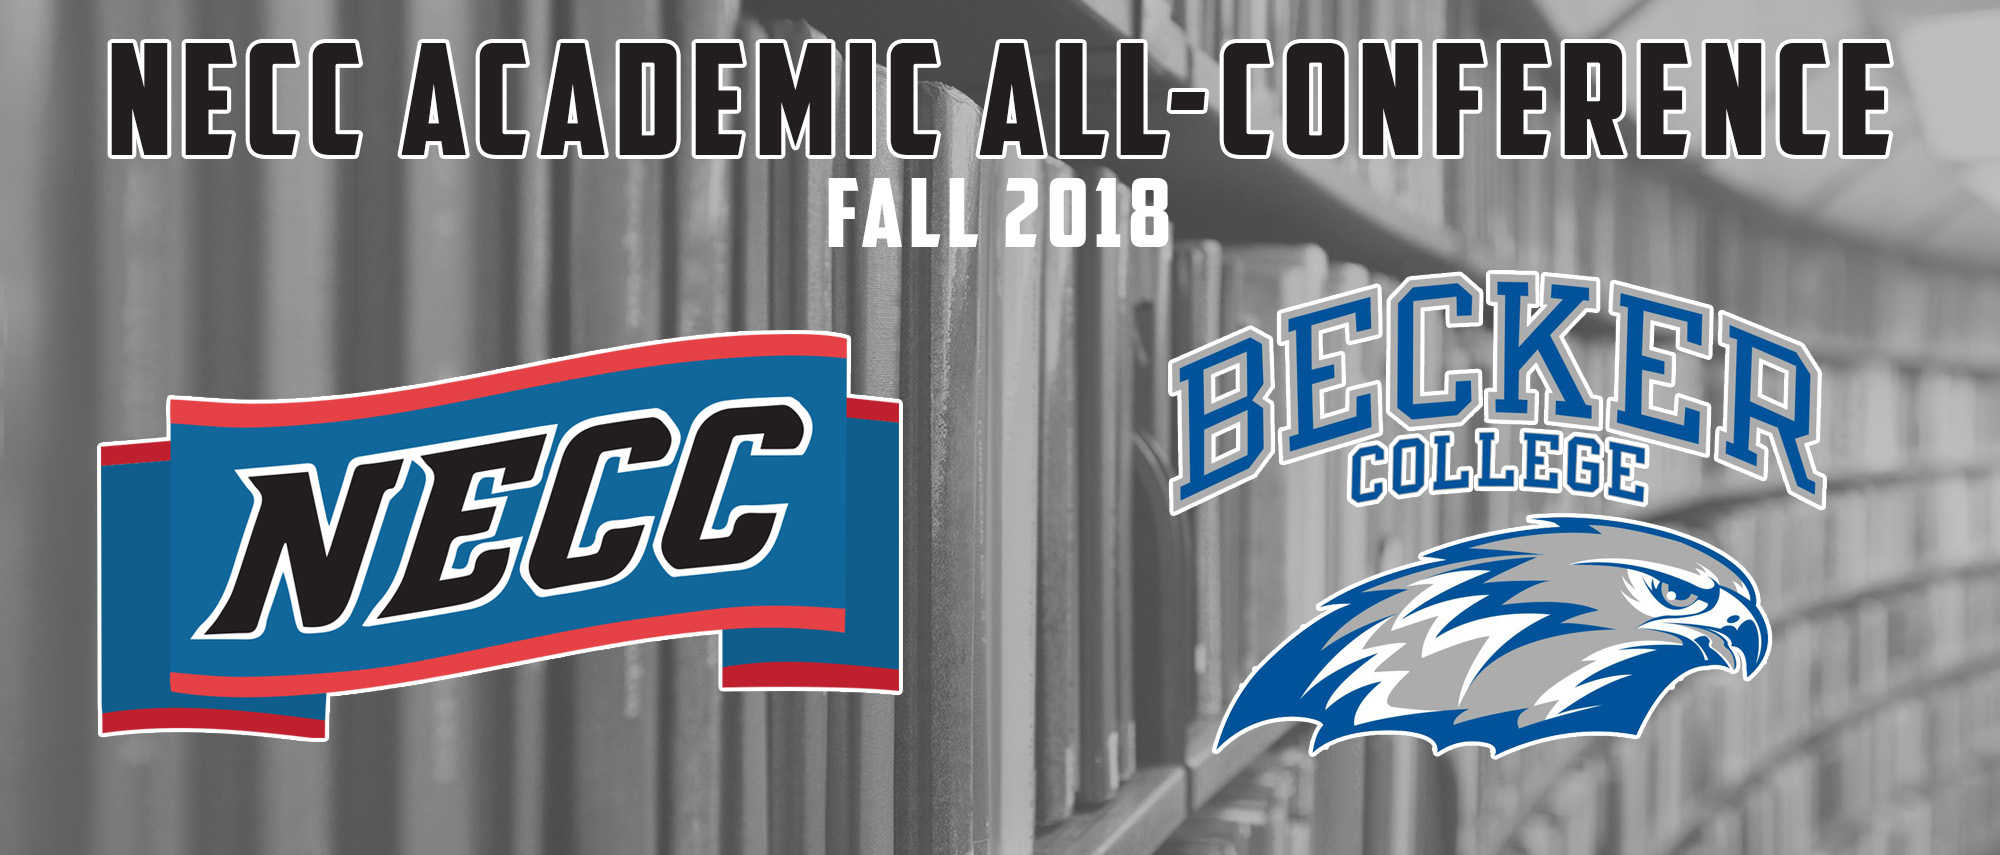 NECC Academic All-Conference: Fall 2018